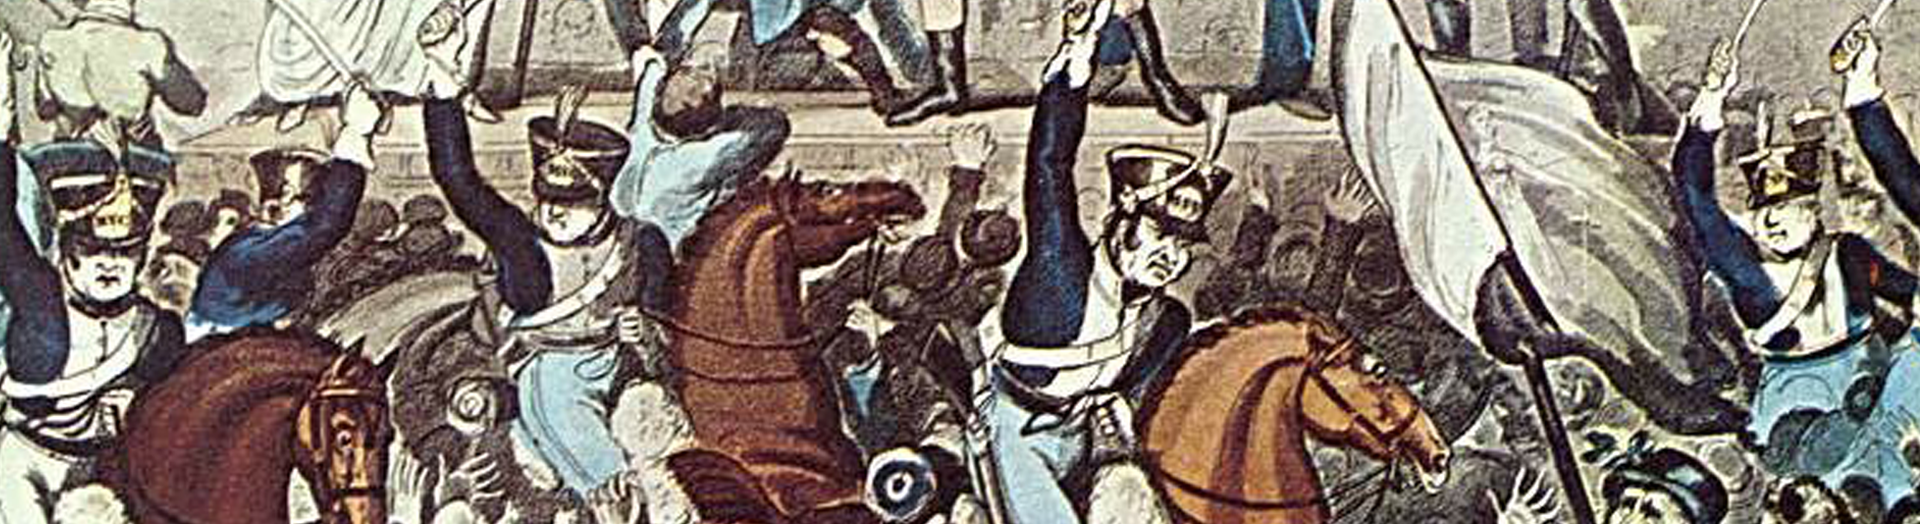 The Hidden Tableaux's Peterloo Massacre 1819